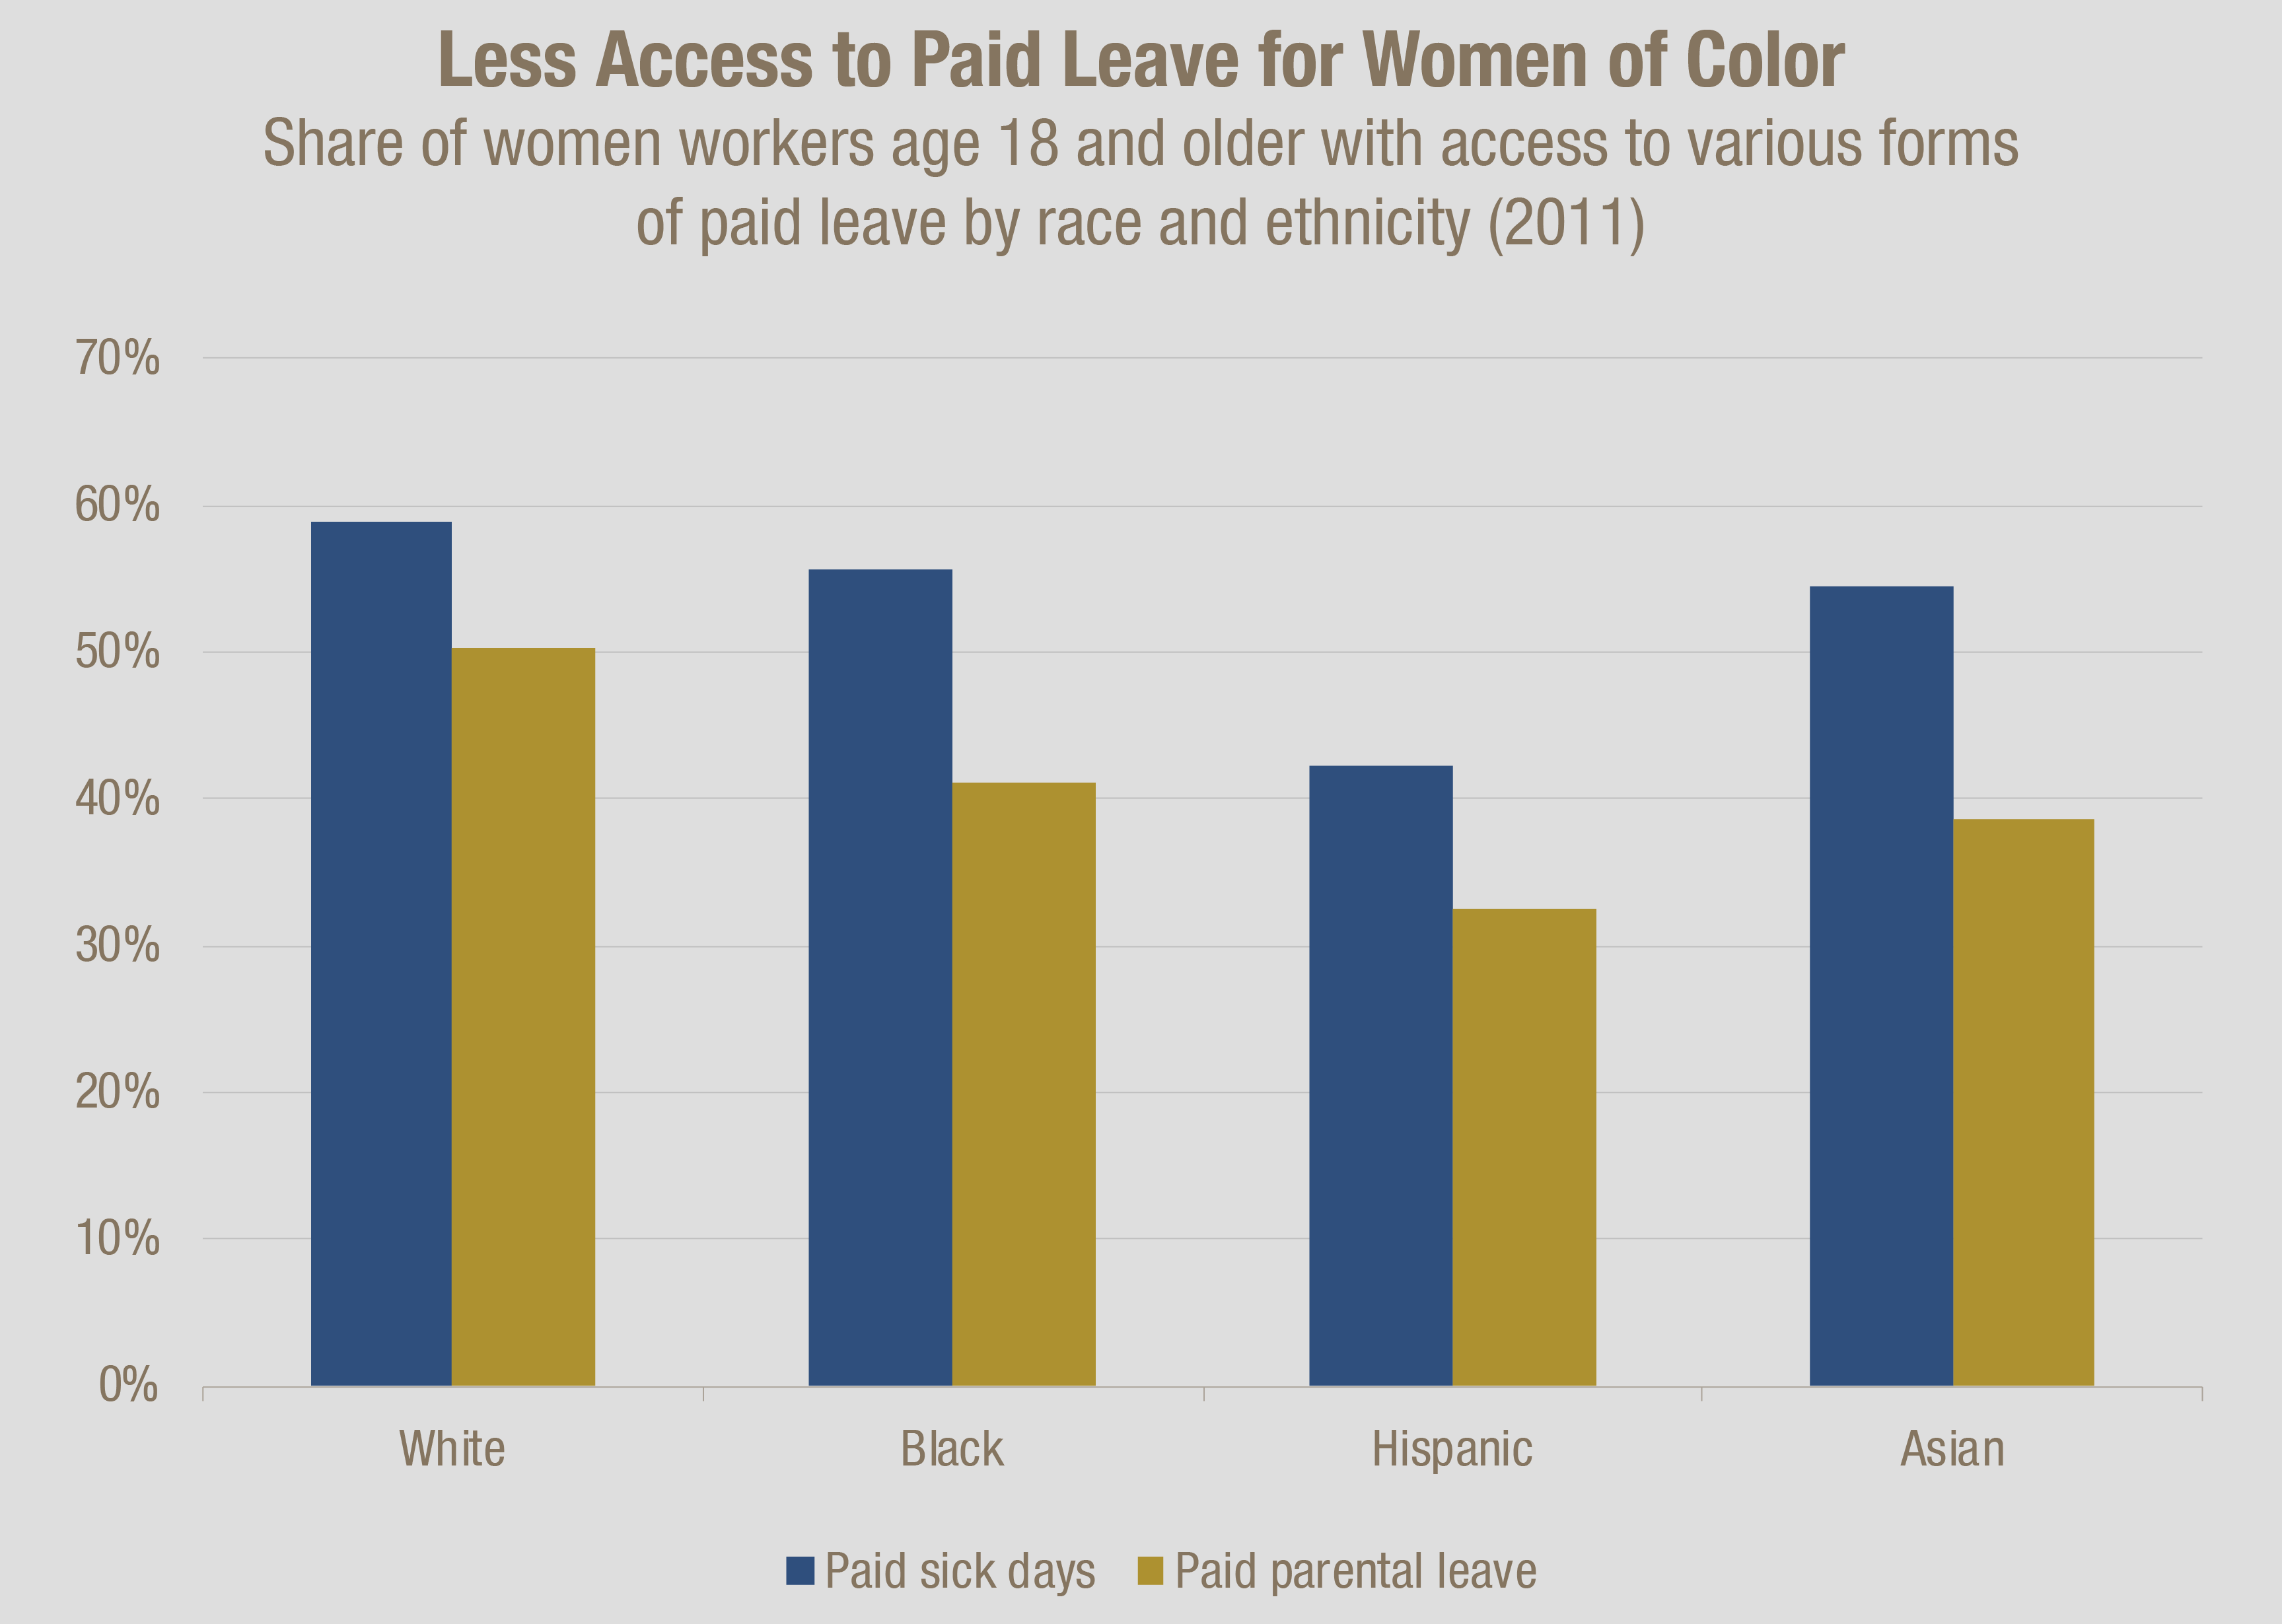 Laying the foundation a wealth building agenda for georgia women latinos least likely to have paid leave or workplace flexibility center for american progress november 20 2012 analysis of bureau of labor xflitez Choice Image